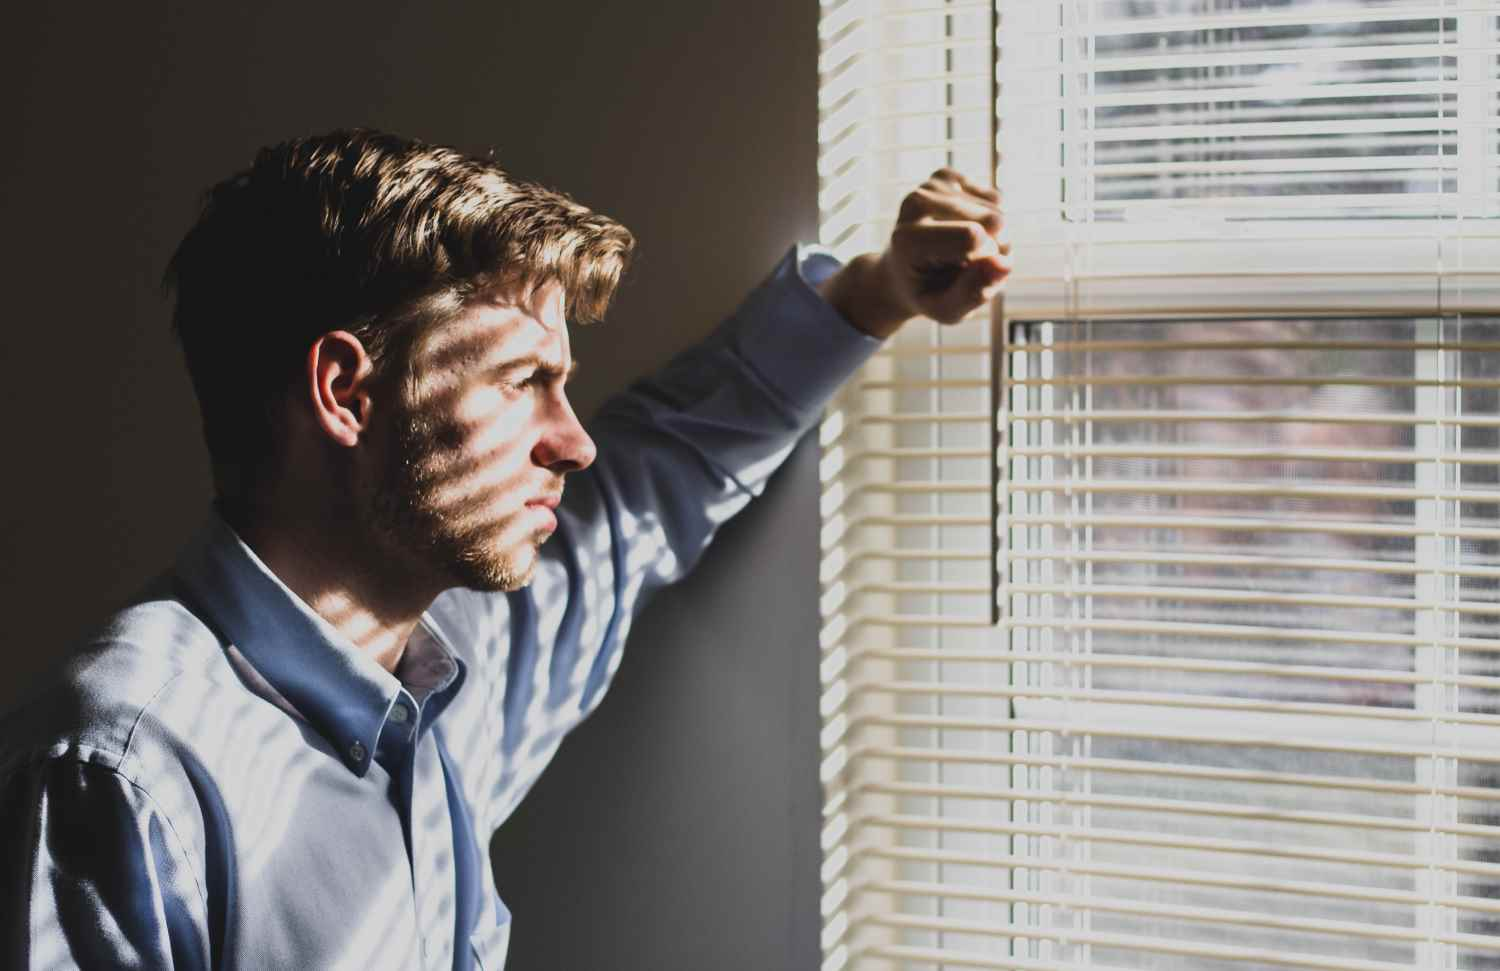 sit next to a window with sunlight when writing javascript